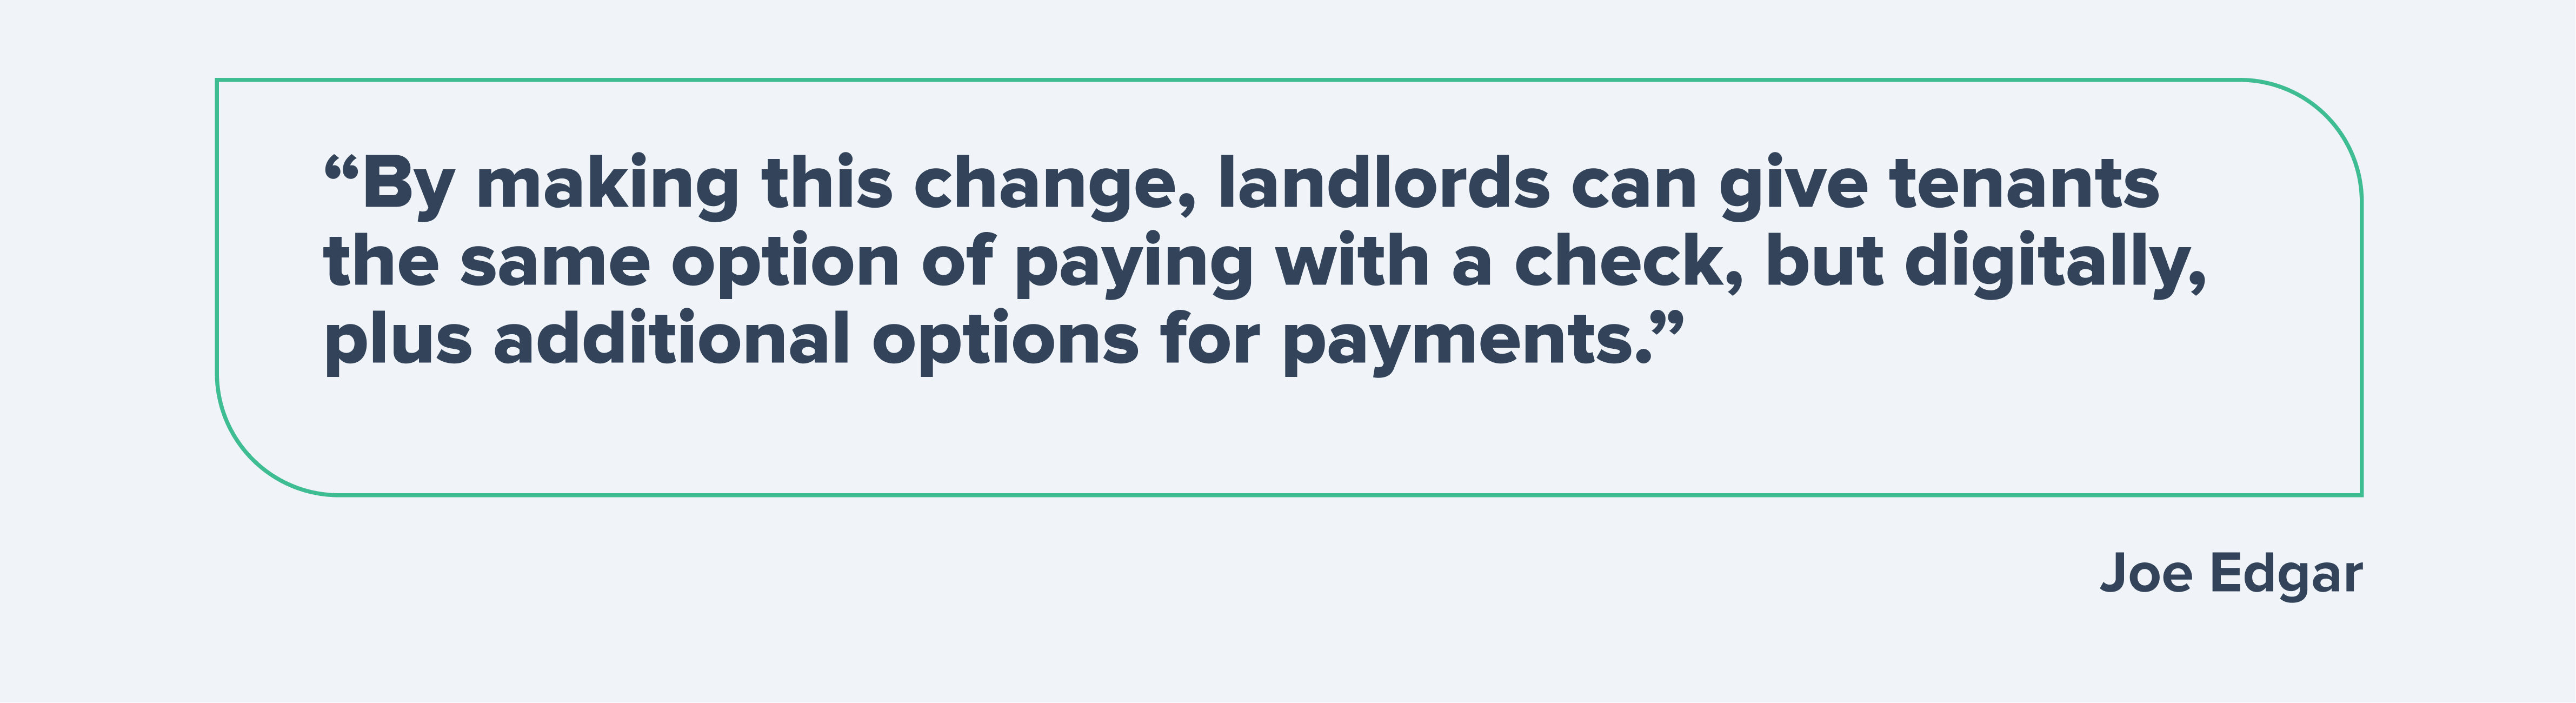 Digital payments for tenants